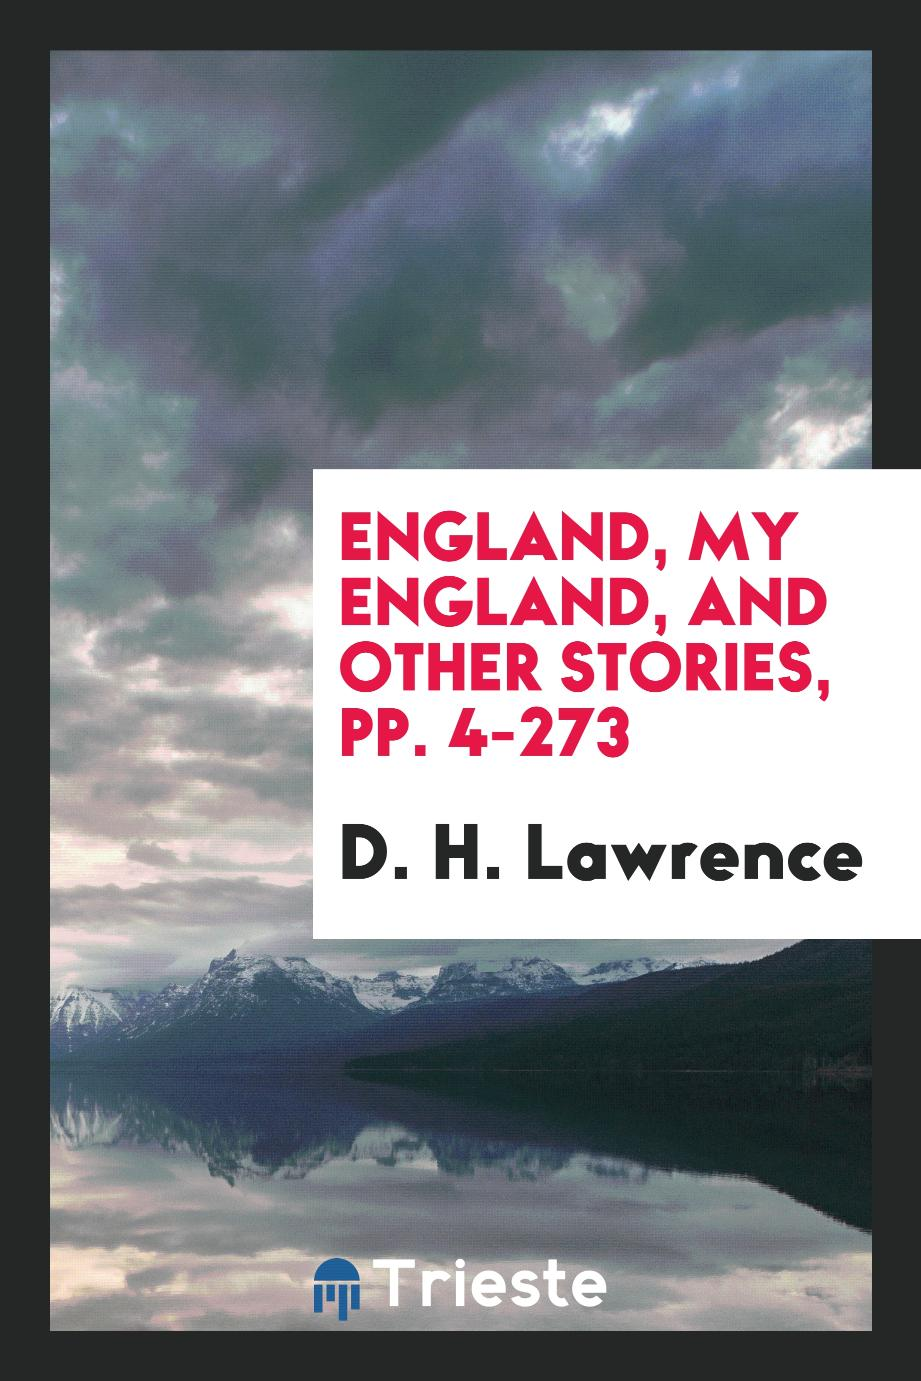 England, My England, and Other Stories, pp. 4-273